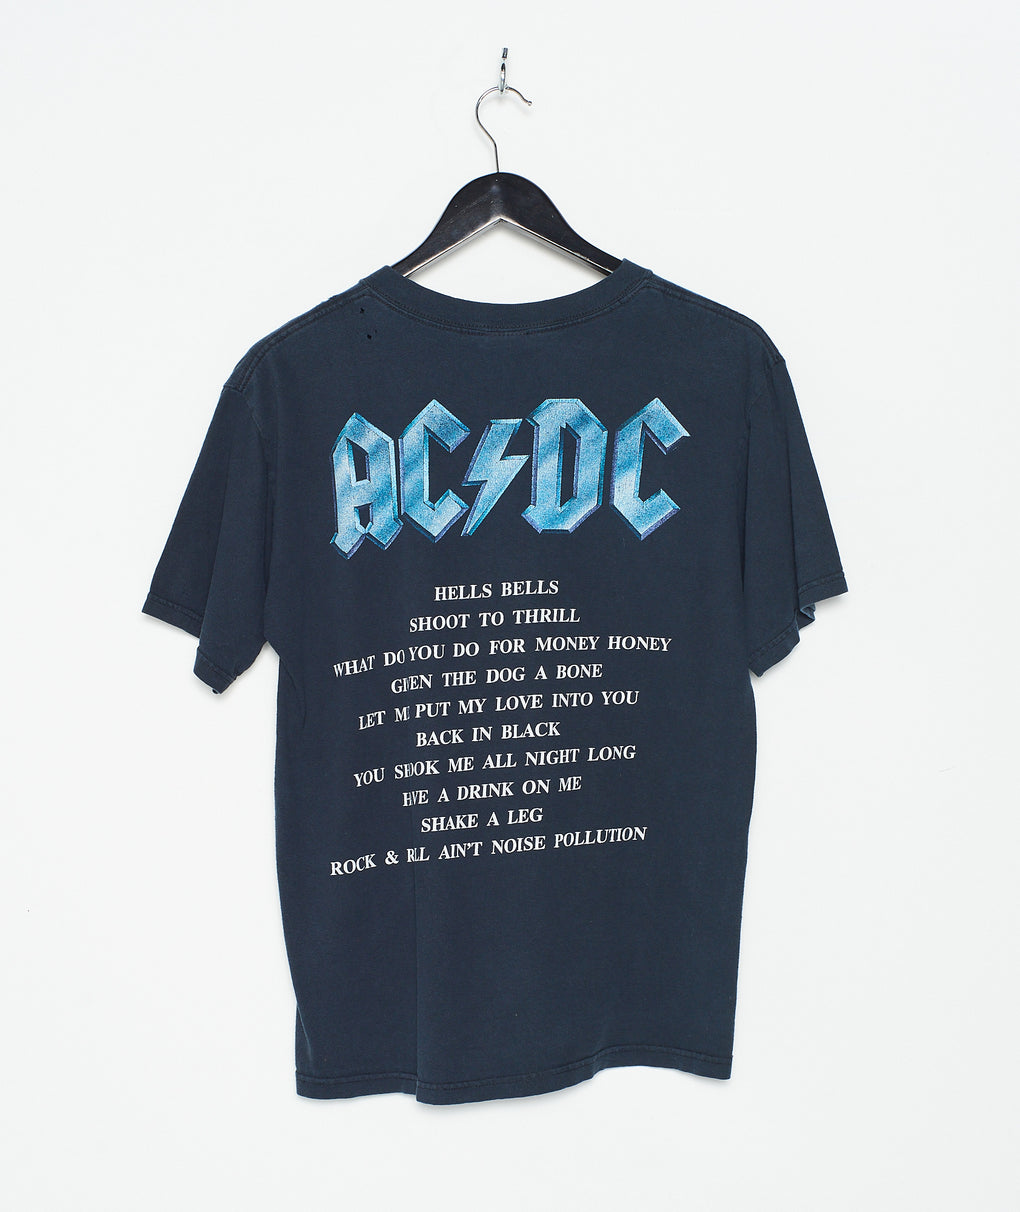 ACDC 'Back in Black Tee (M)